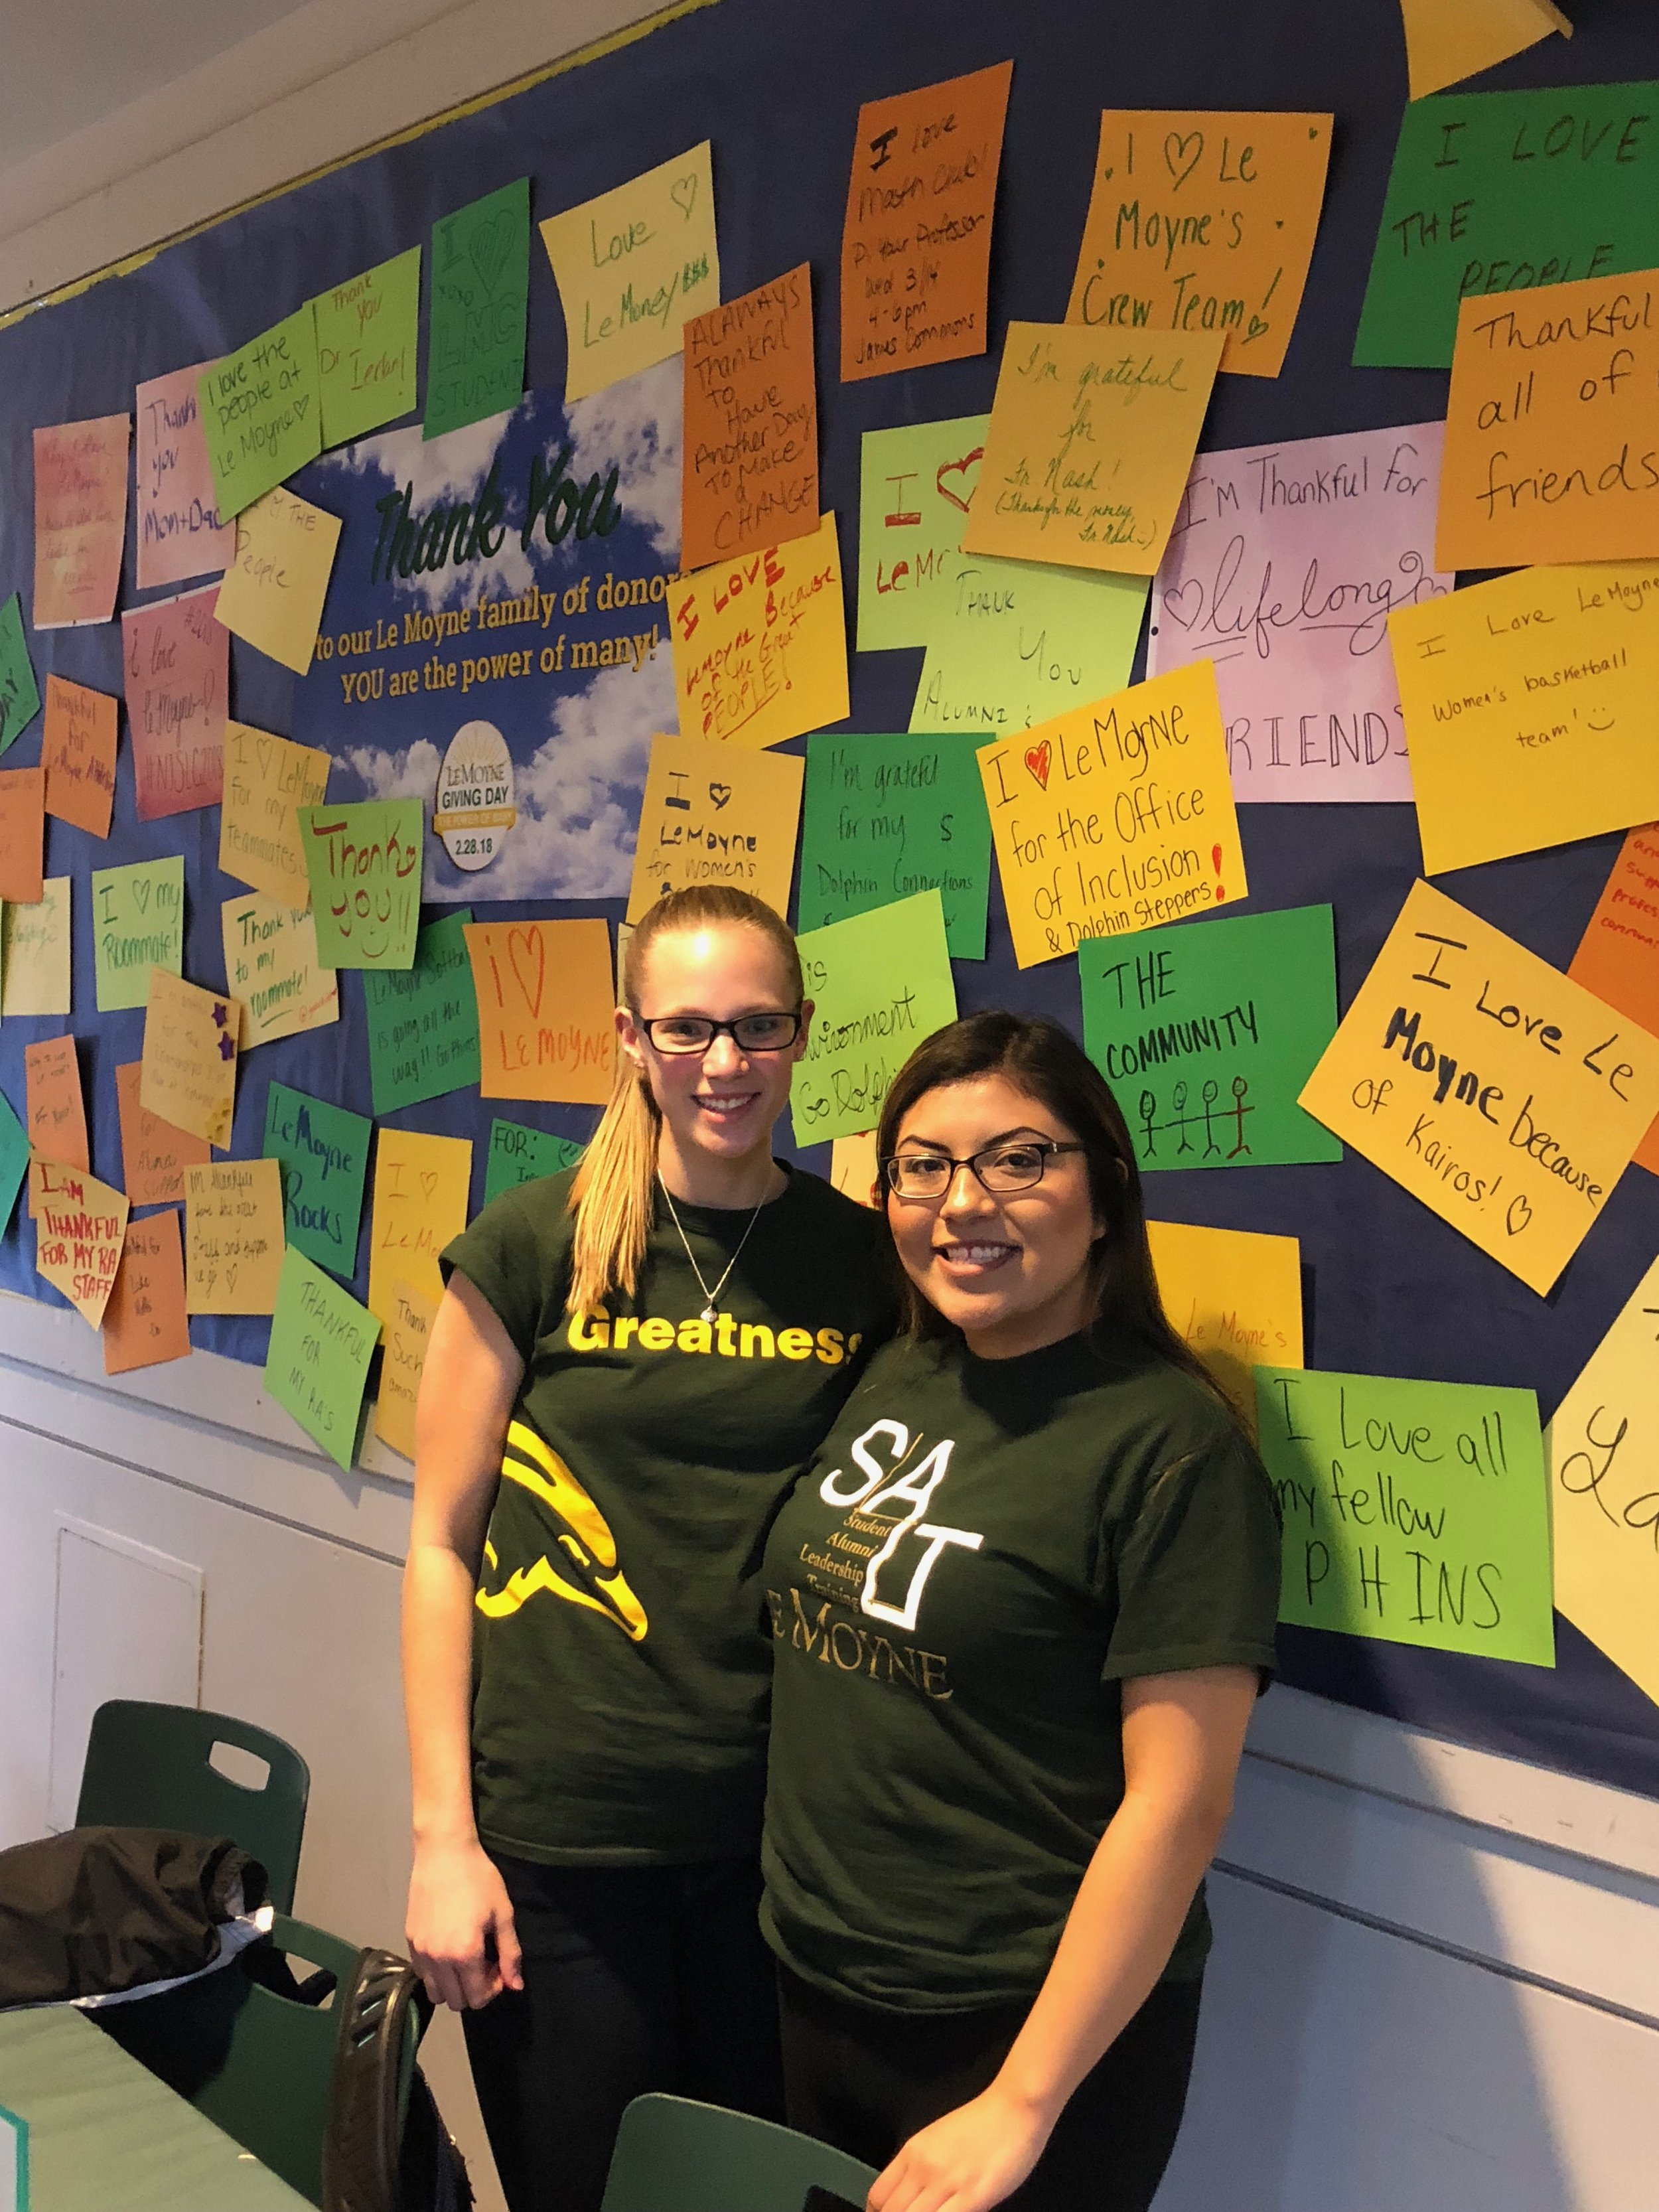 Members of Le Moyne's SALT program join their peers in sharing what they love about Le Moyne (photo by Le Moyne College)